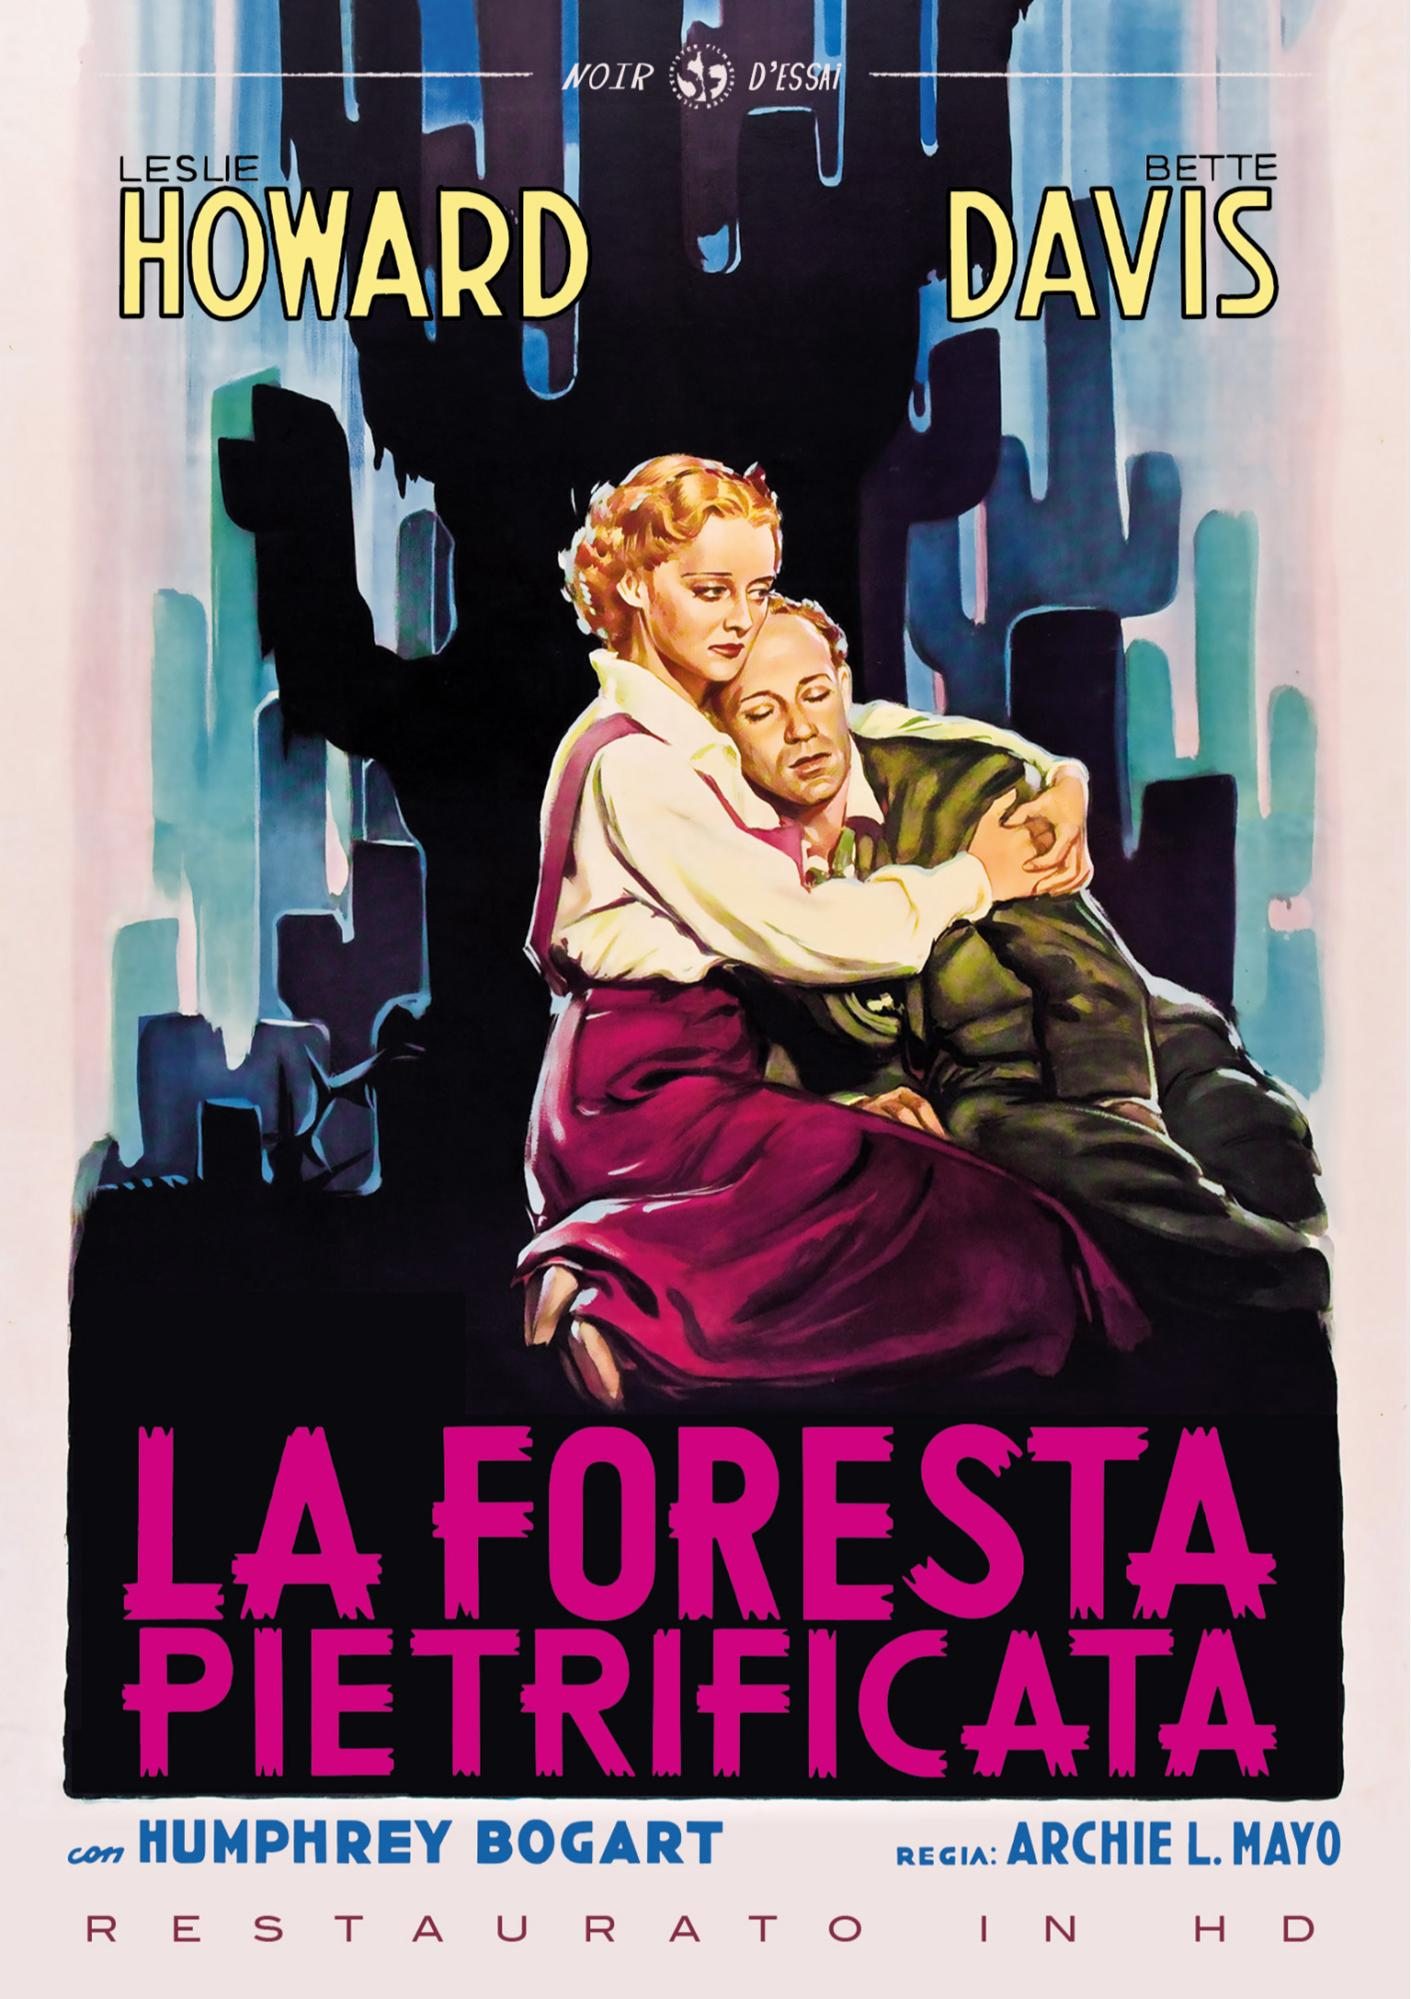 LA FORESTA PIETRIFICATA (RESTAURATO IN HD) (DVD)